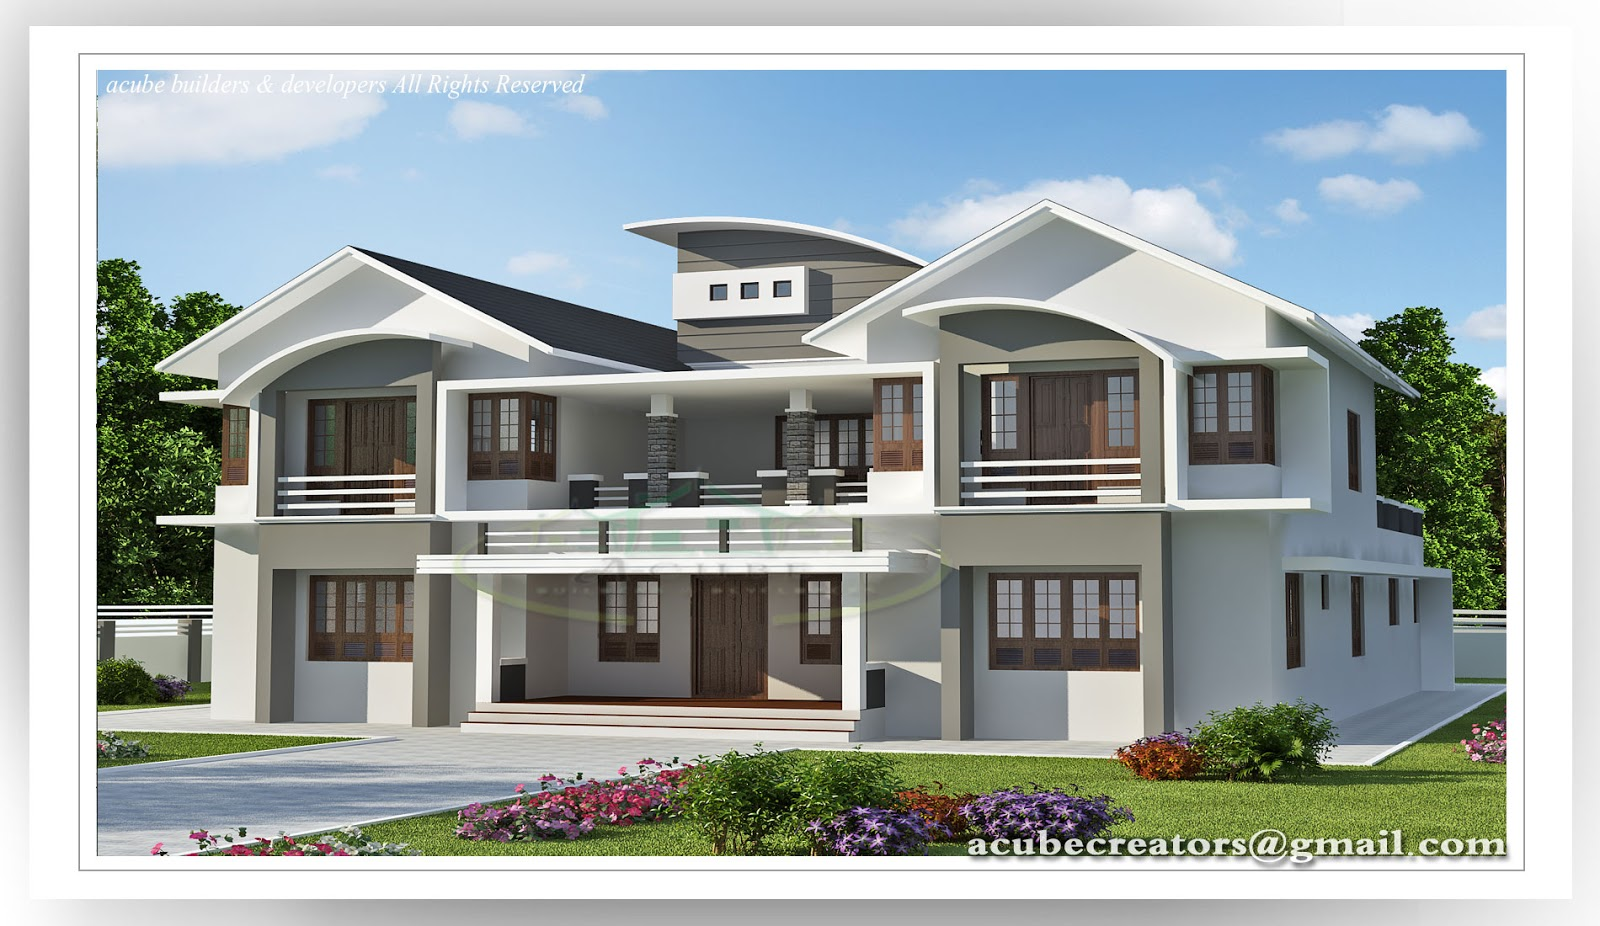 6 bedroom luxury villa design 5091 plan 149 for 6 bedroom modern house plans